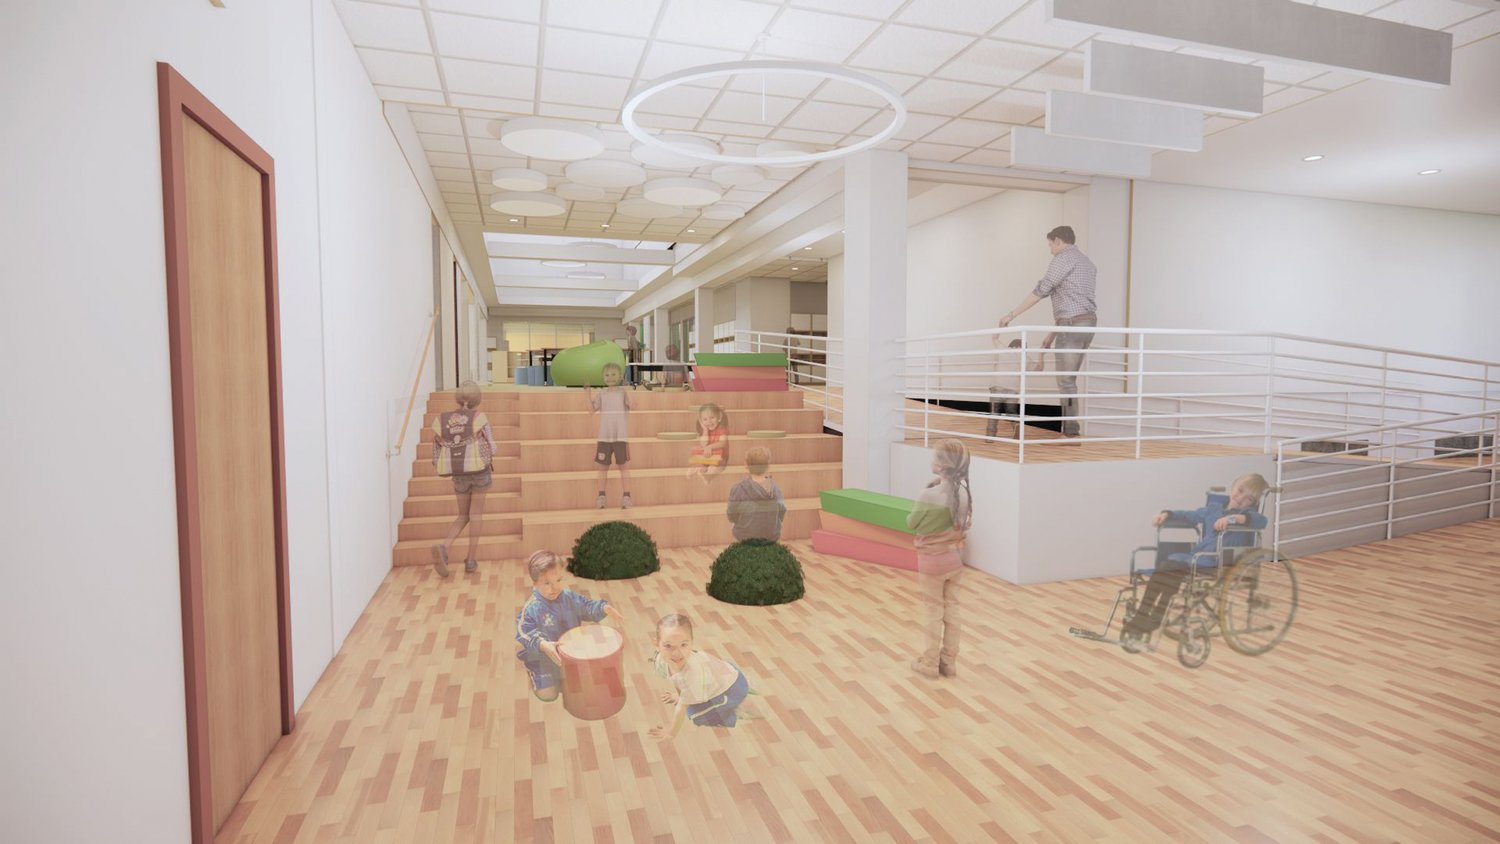 ARTIST'S RENDERING: A digital image shows what one of the gathering spaces could look like, including accessibility options for all students.